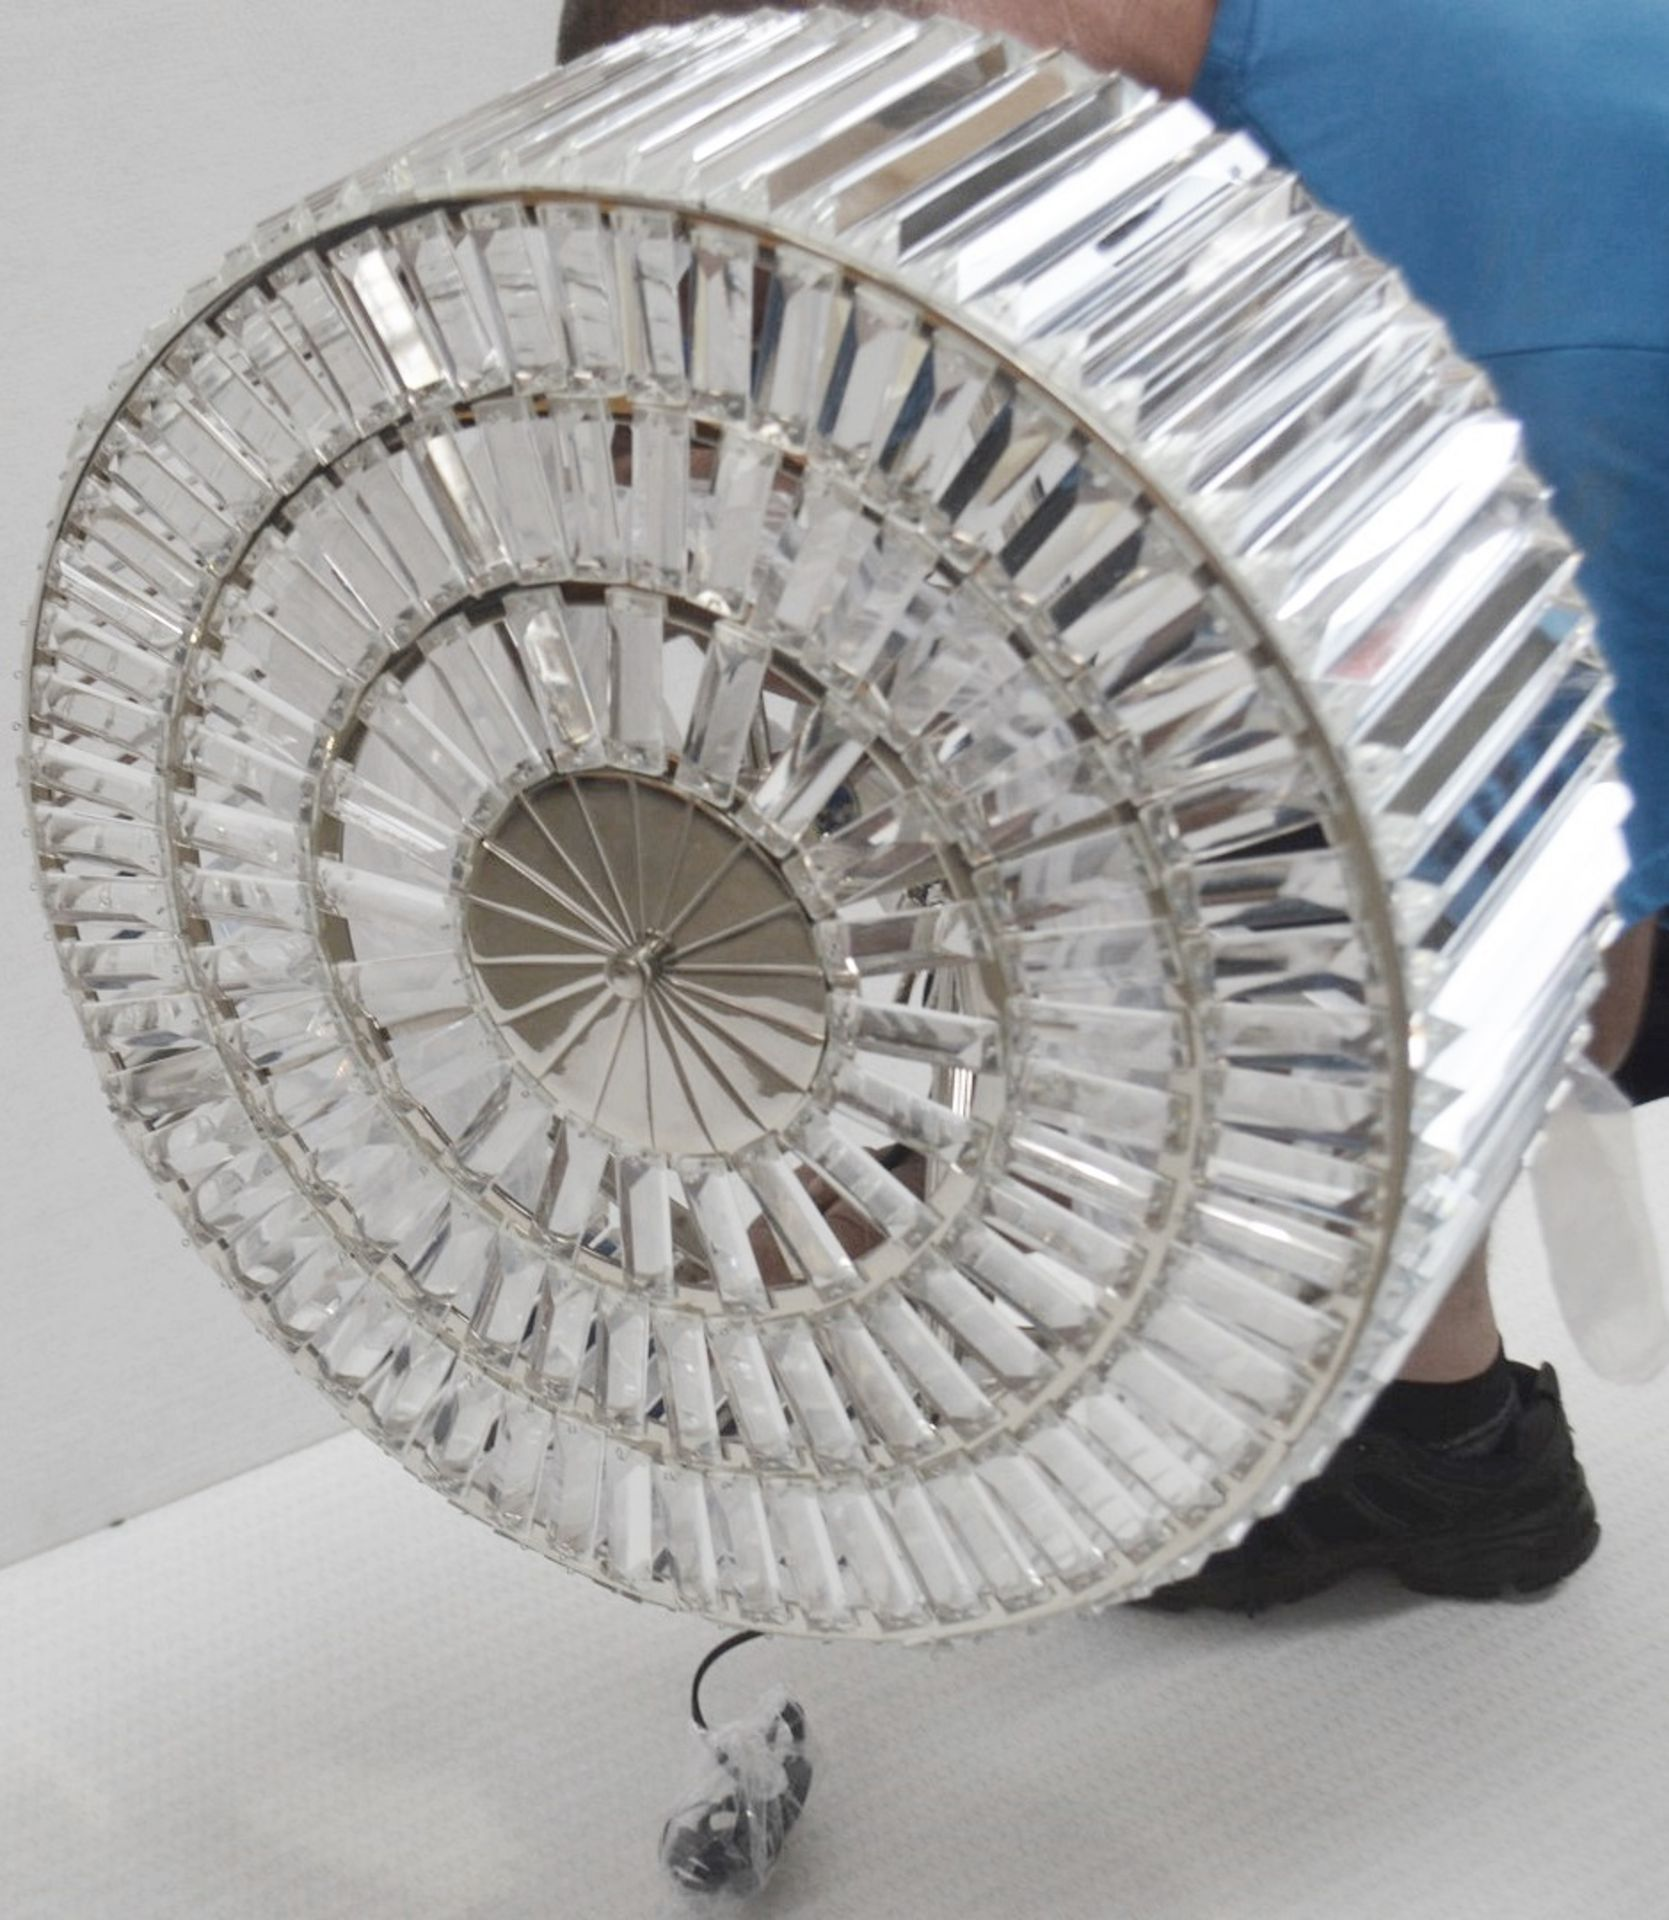 1 x EICHHOLTZ 'Infinity' Art Deco-style Chandelier Featuring Glass Crystal Rods - RRP £1,390 - Image 8 of 10